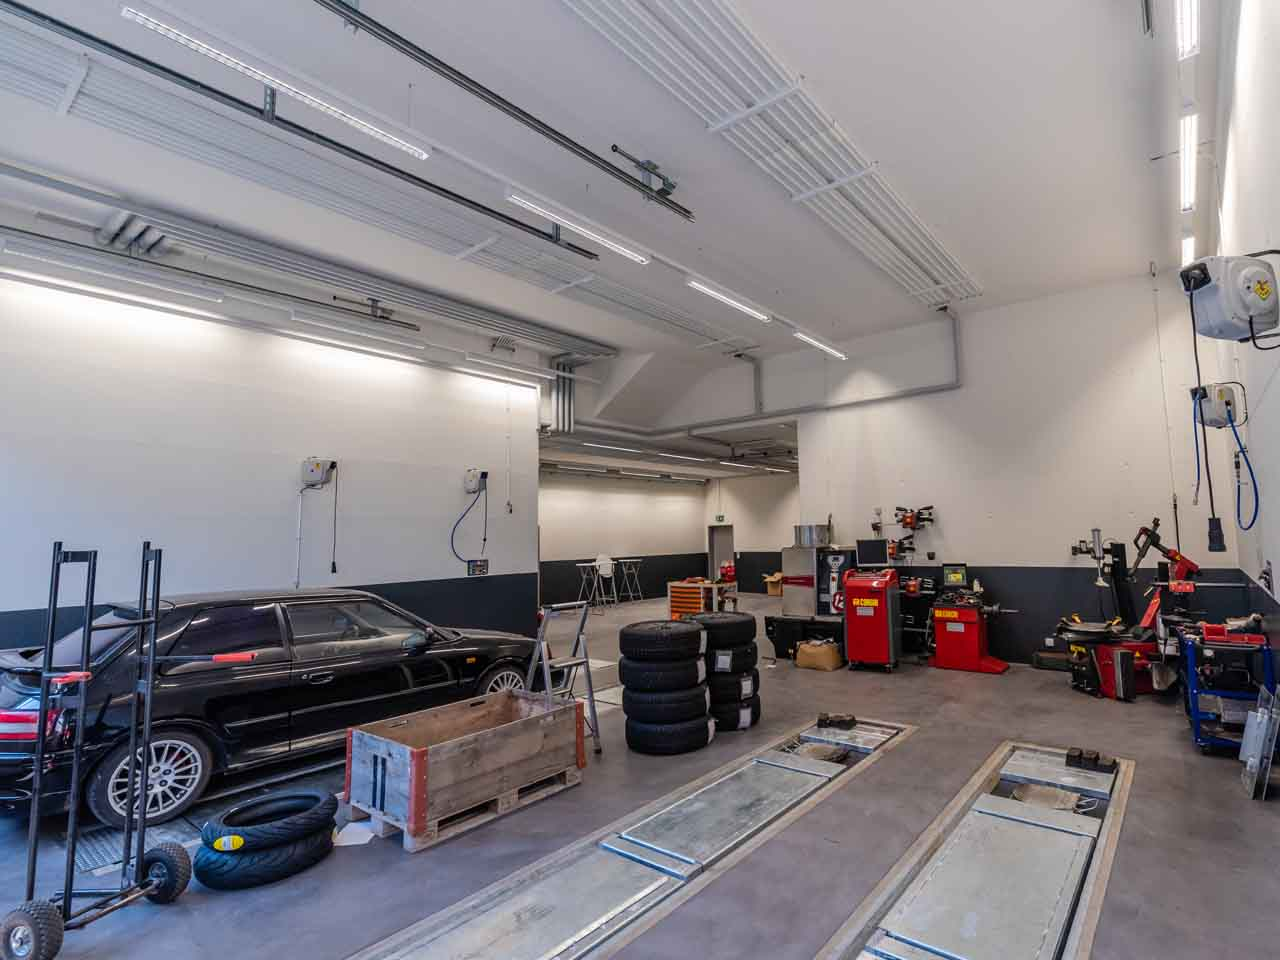 https://garagebienz.mazda.ch/wp-content/uploads/sites/48/2019/12/garage-bienz-neubau-1280x960_4.jpg